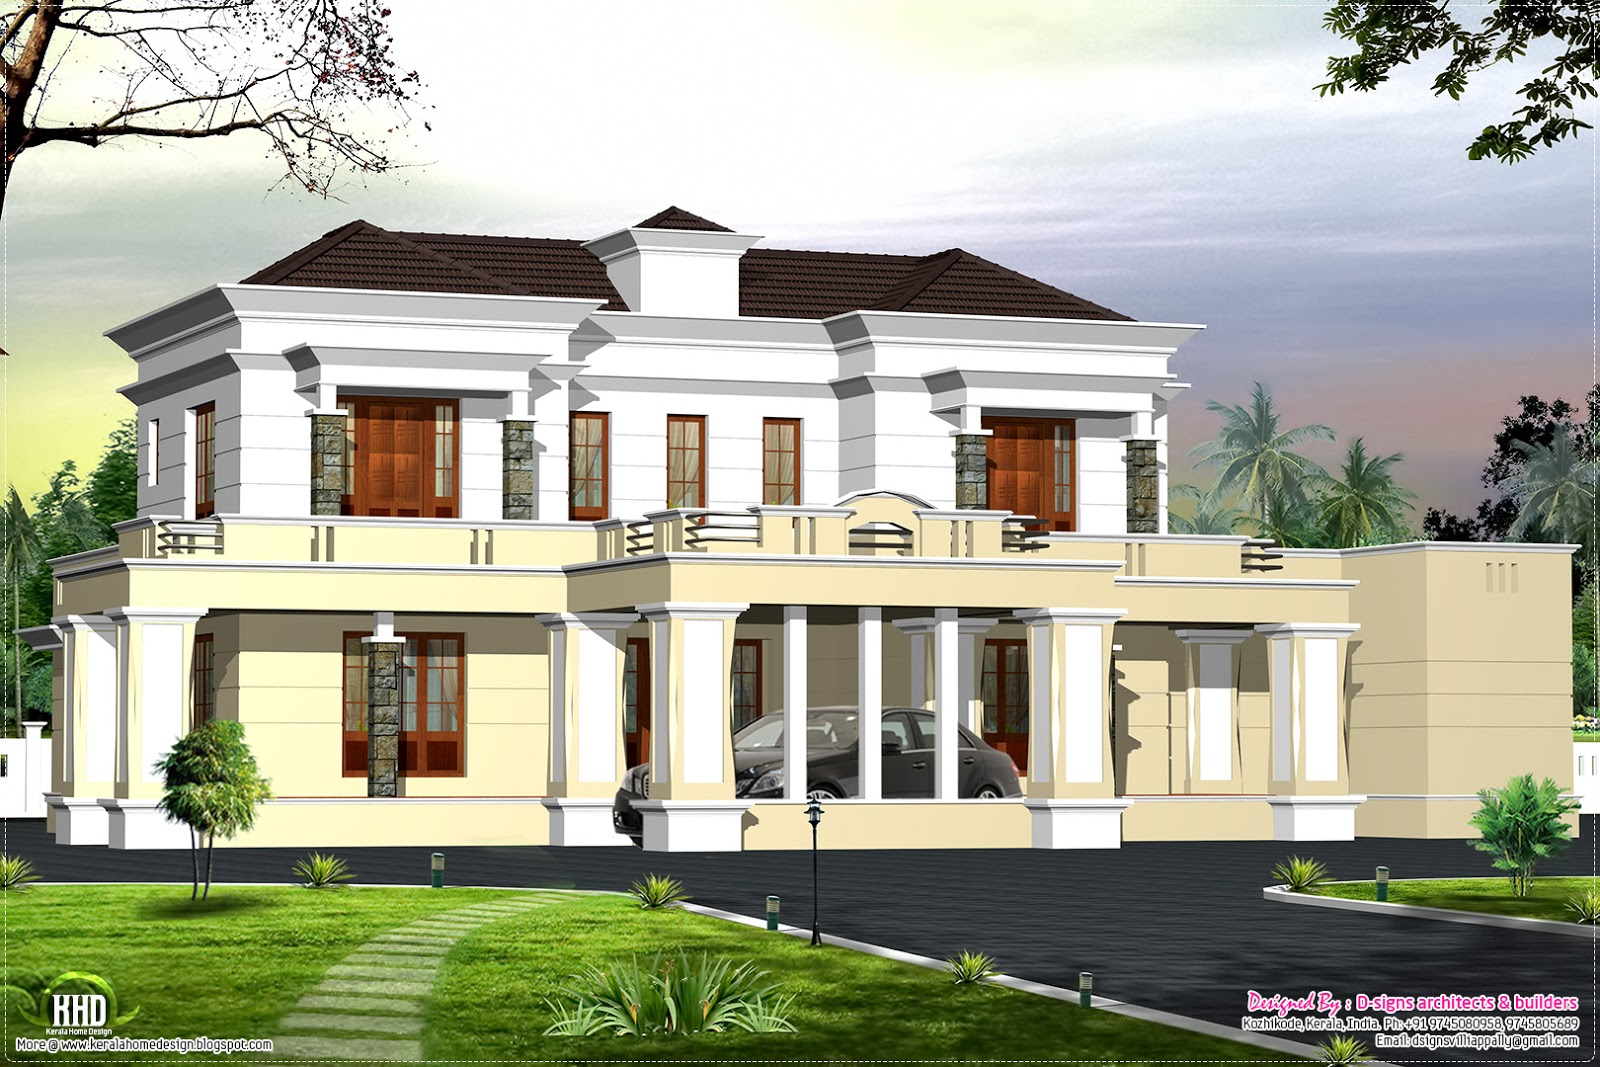 Victorian style luxury home design kerala home design for Designer house plans